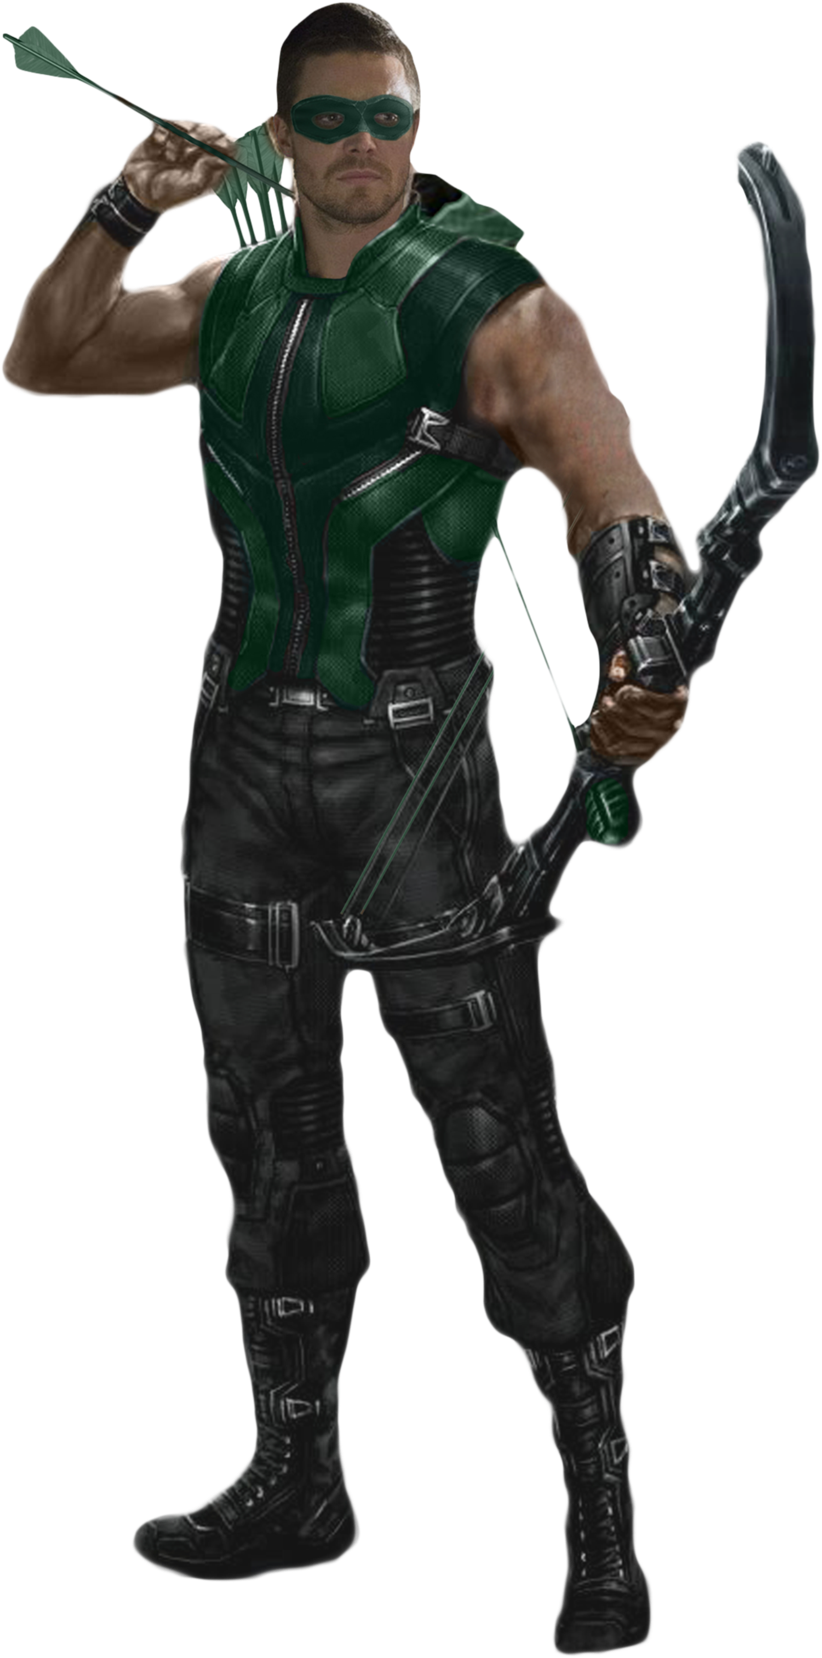 Cw arrow png. Download hd green justice